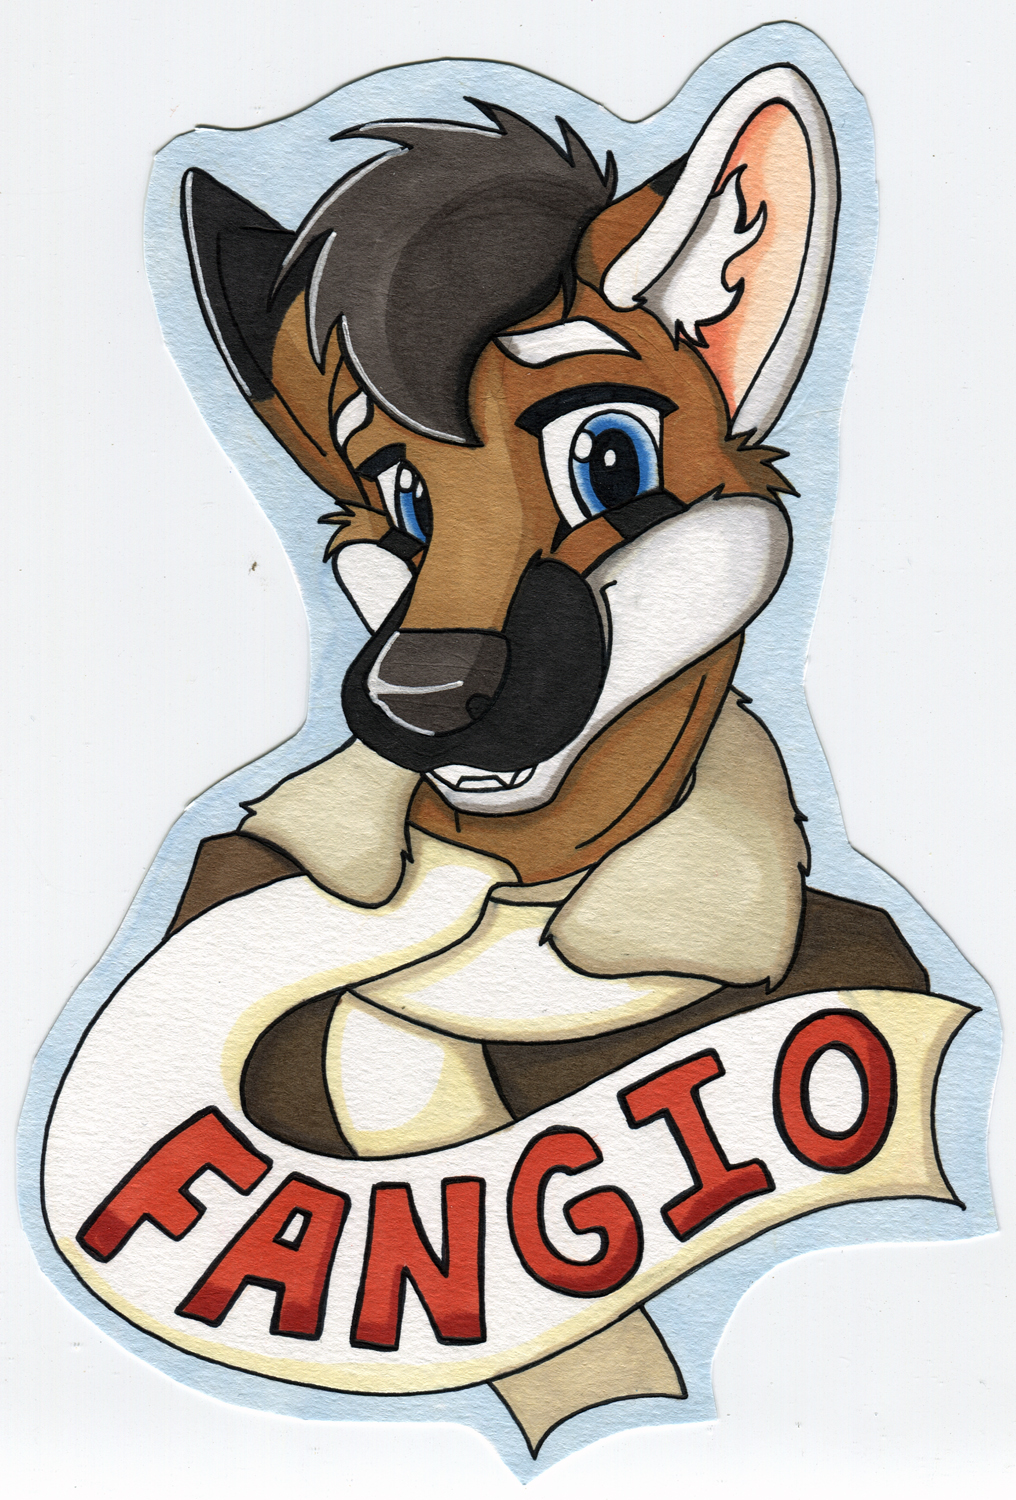 Most recent image: Fangio MFF 2018